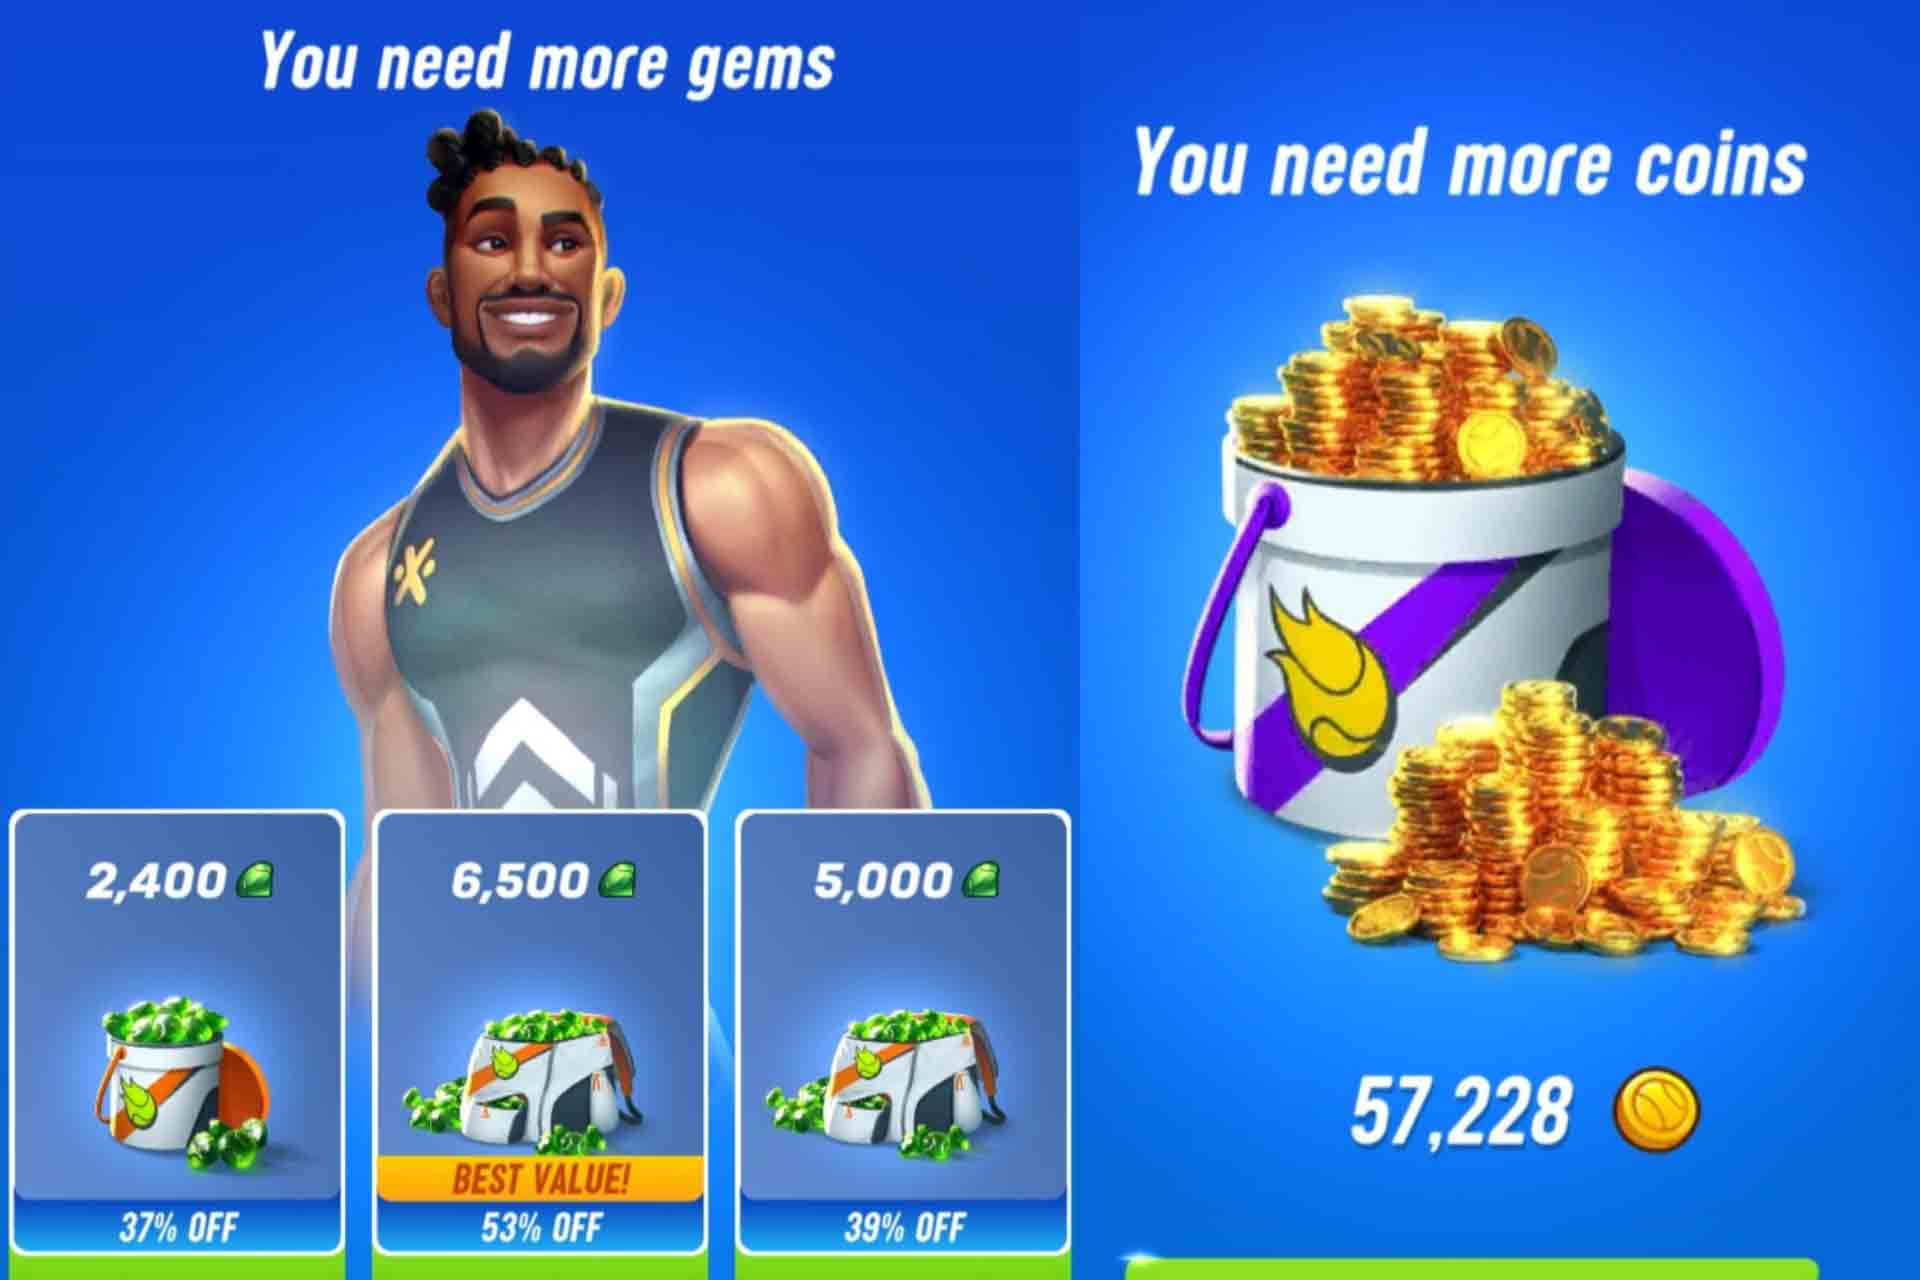 Get more Gems and Coins in Tennis Clash game to unlock bags and to easily upgrade cards and characters.